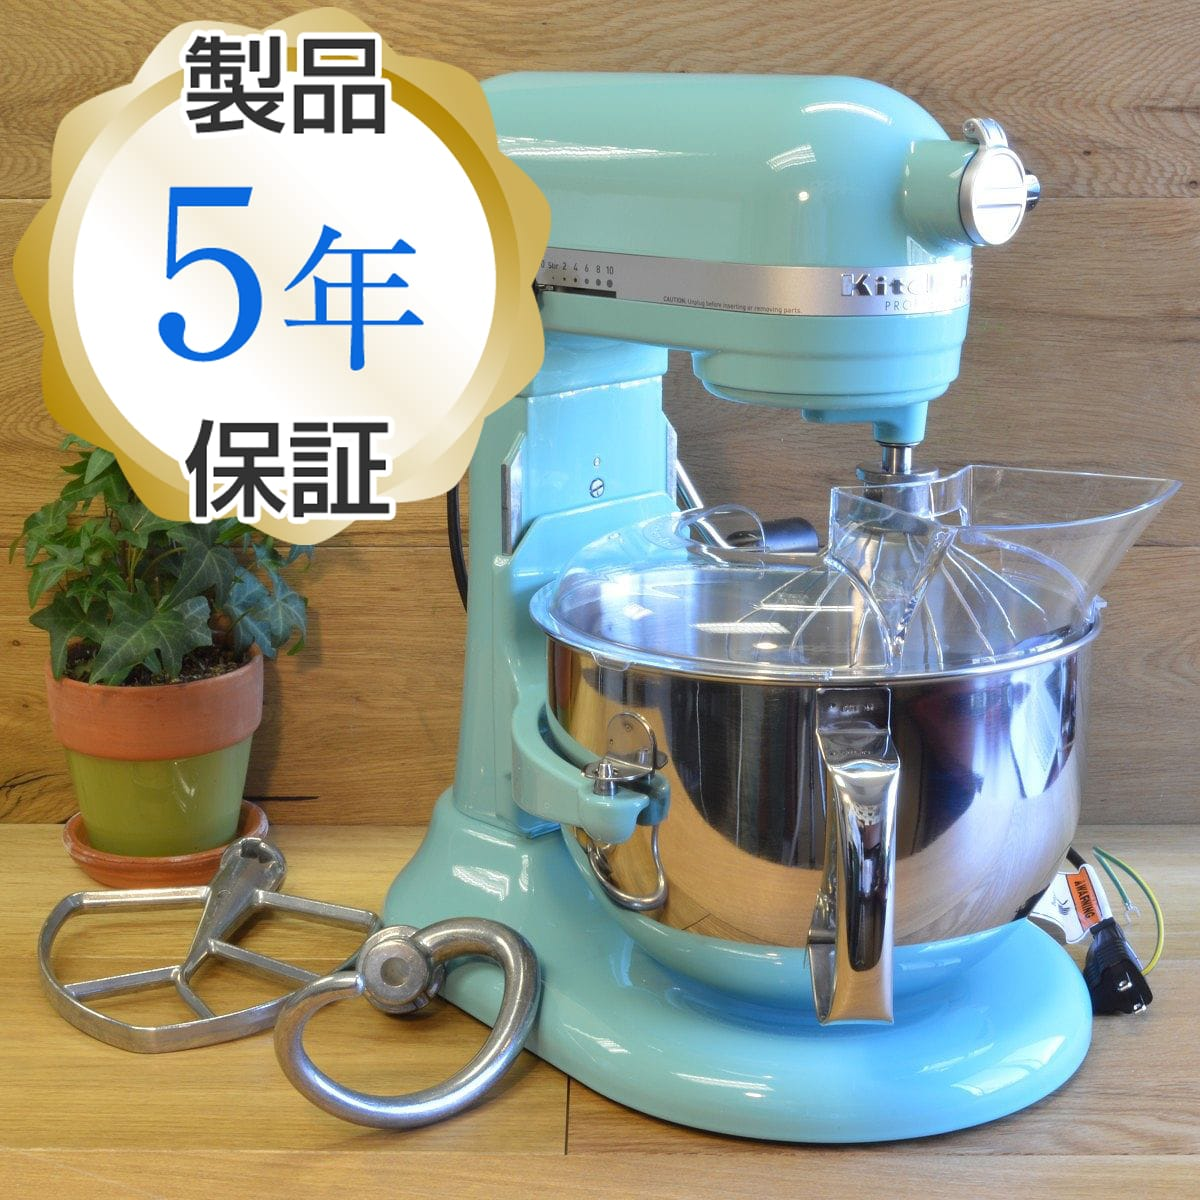 KitchenAid Stand Mixer Professional 600 Series 6 Quart アクアスカイ Tiffany Blue  KitchenAid 6 Qt Stand Mixer KP26M1xaq Aqua Sky Tiffany Blue